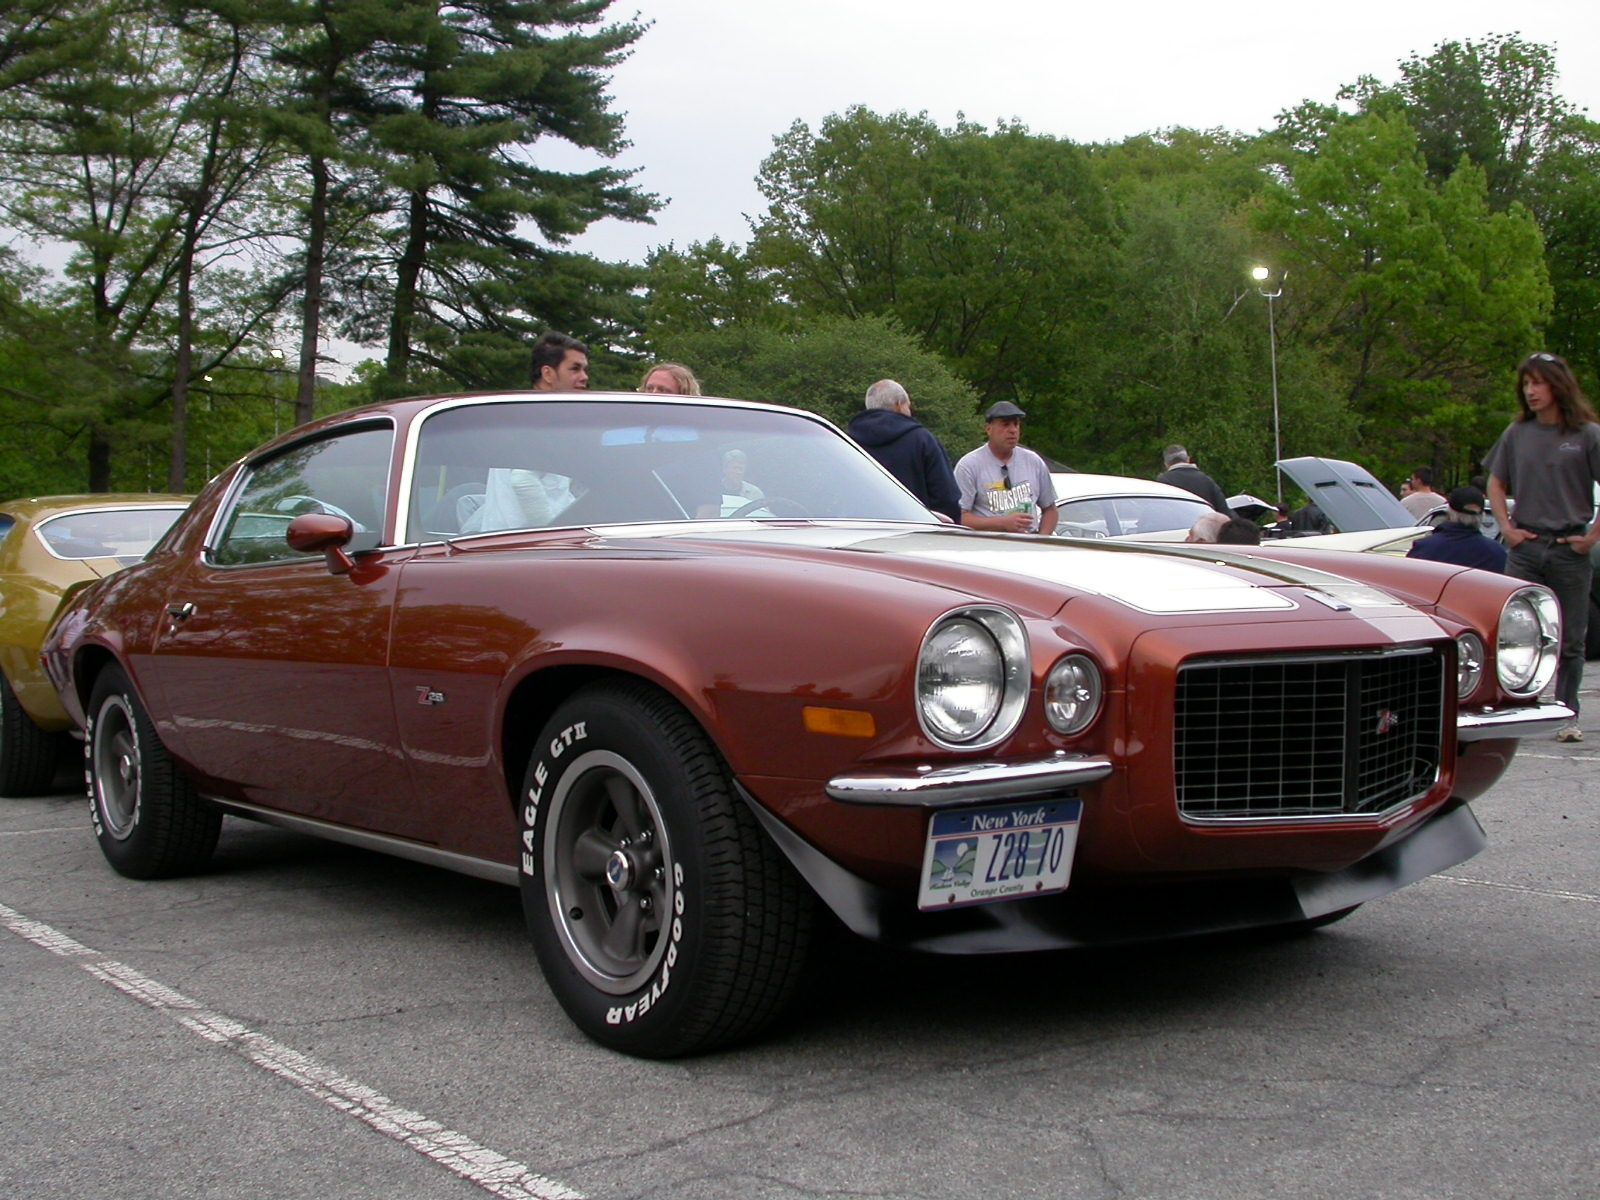 1970 z28 pics - Yahoo Image Search Results | 1970 Z-28 THE BEAST ...